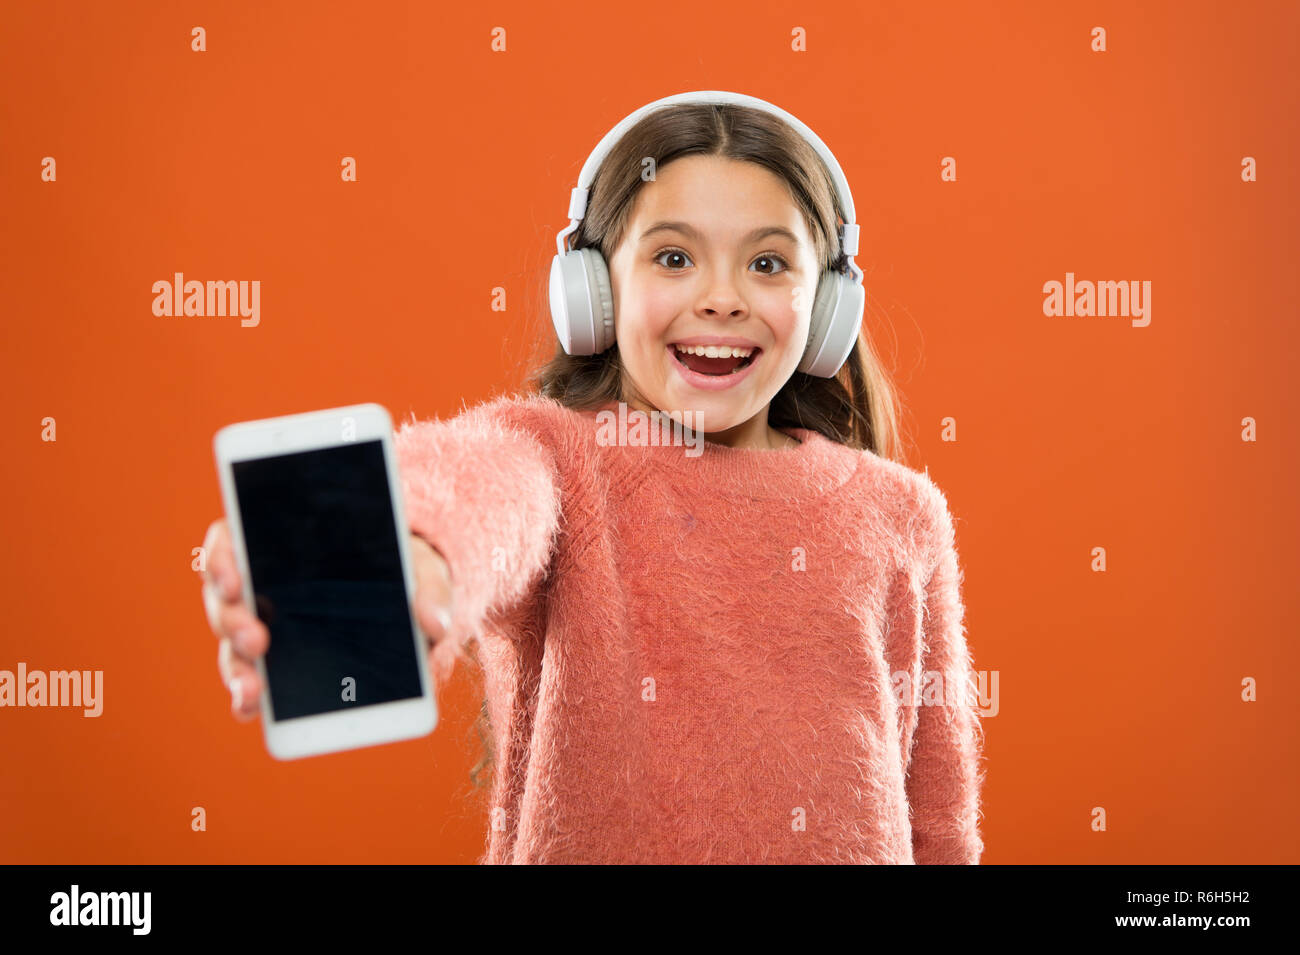 Get music family subscription. Access to millions of songs. Enjoy music concept. Best music apps that deserve a listen. Girl child listen music modern headphones and smartphone. Listen for free. - Stock Image